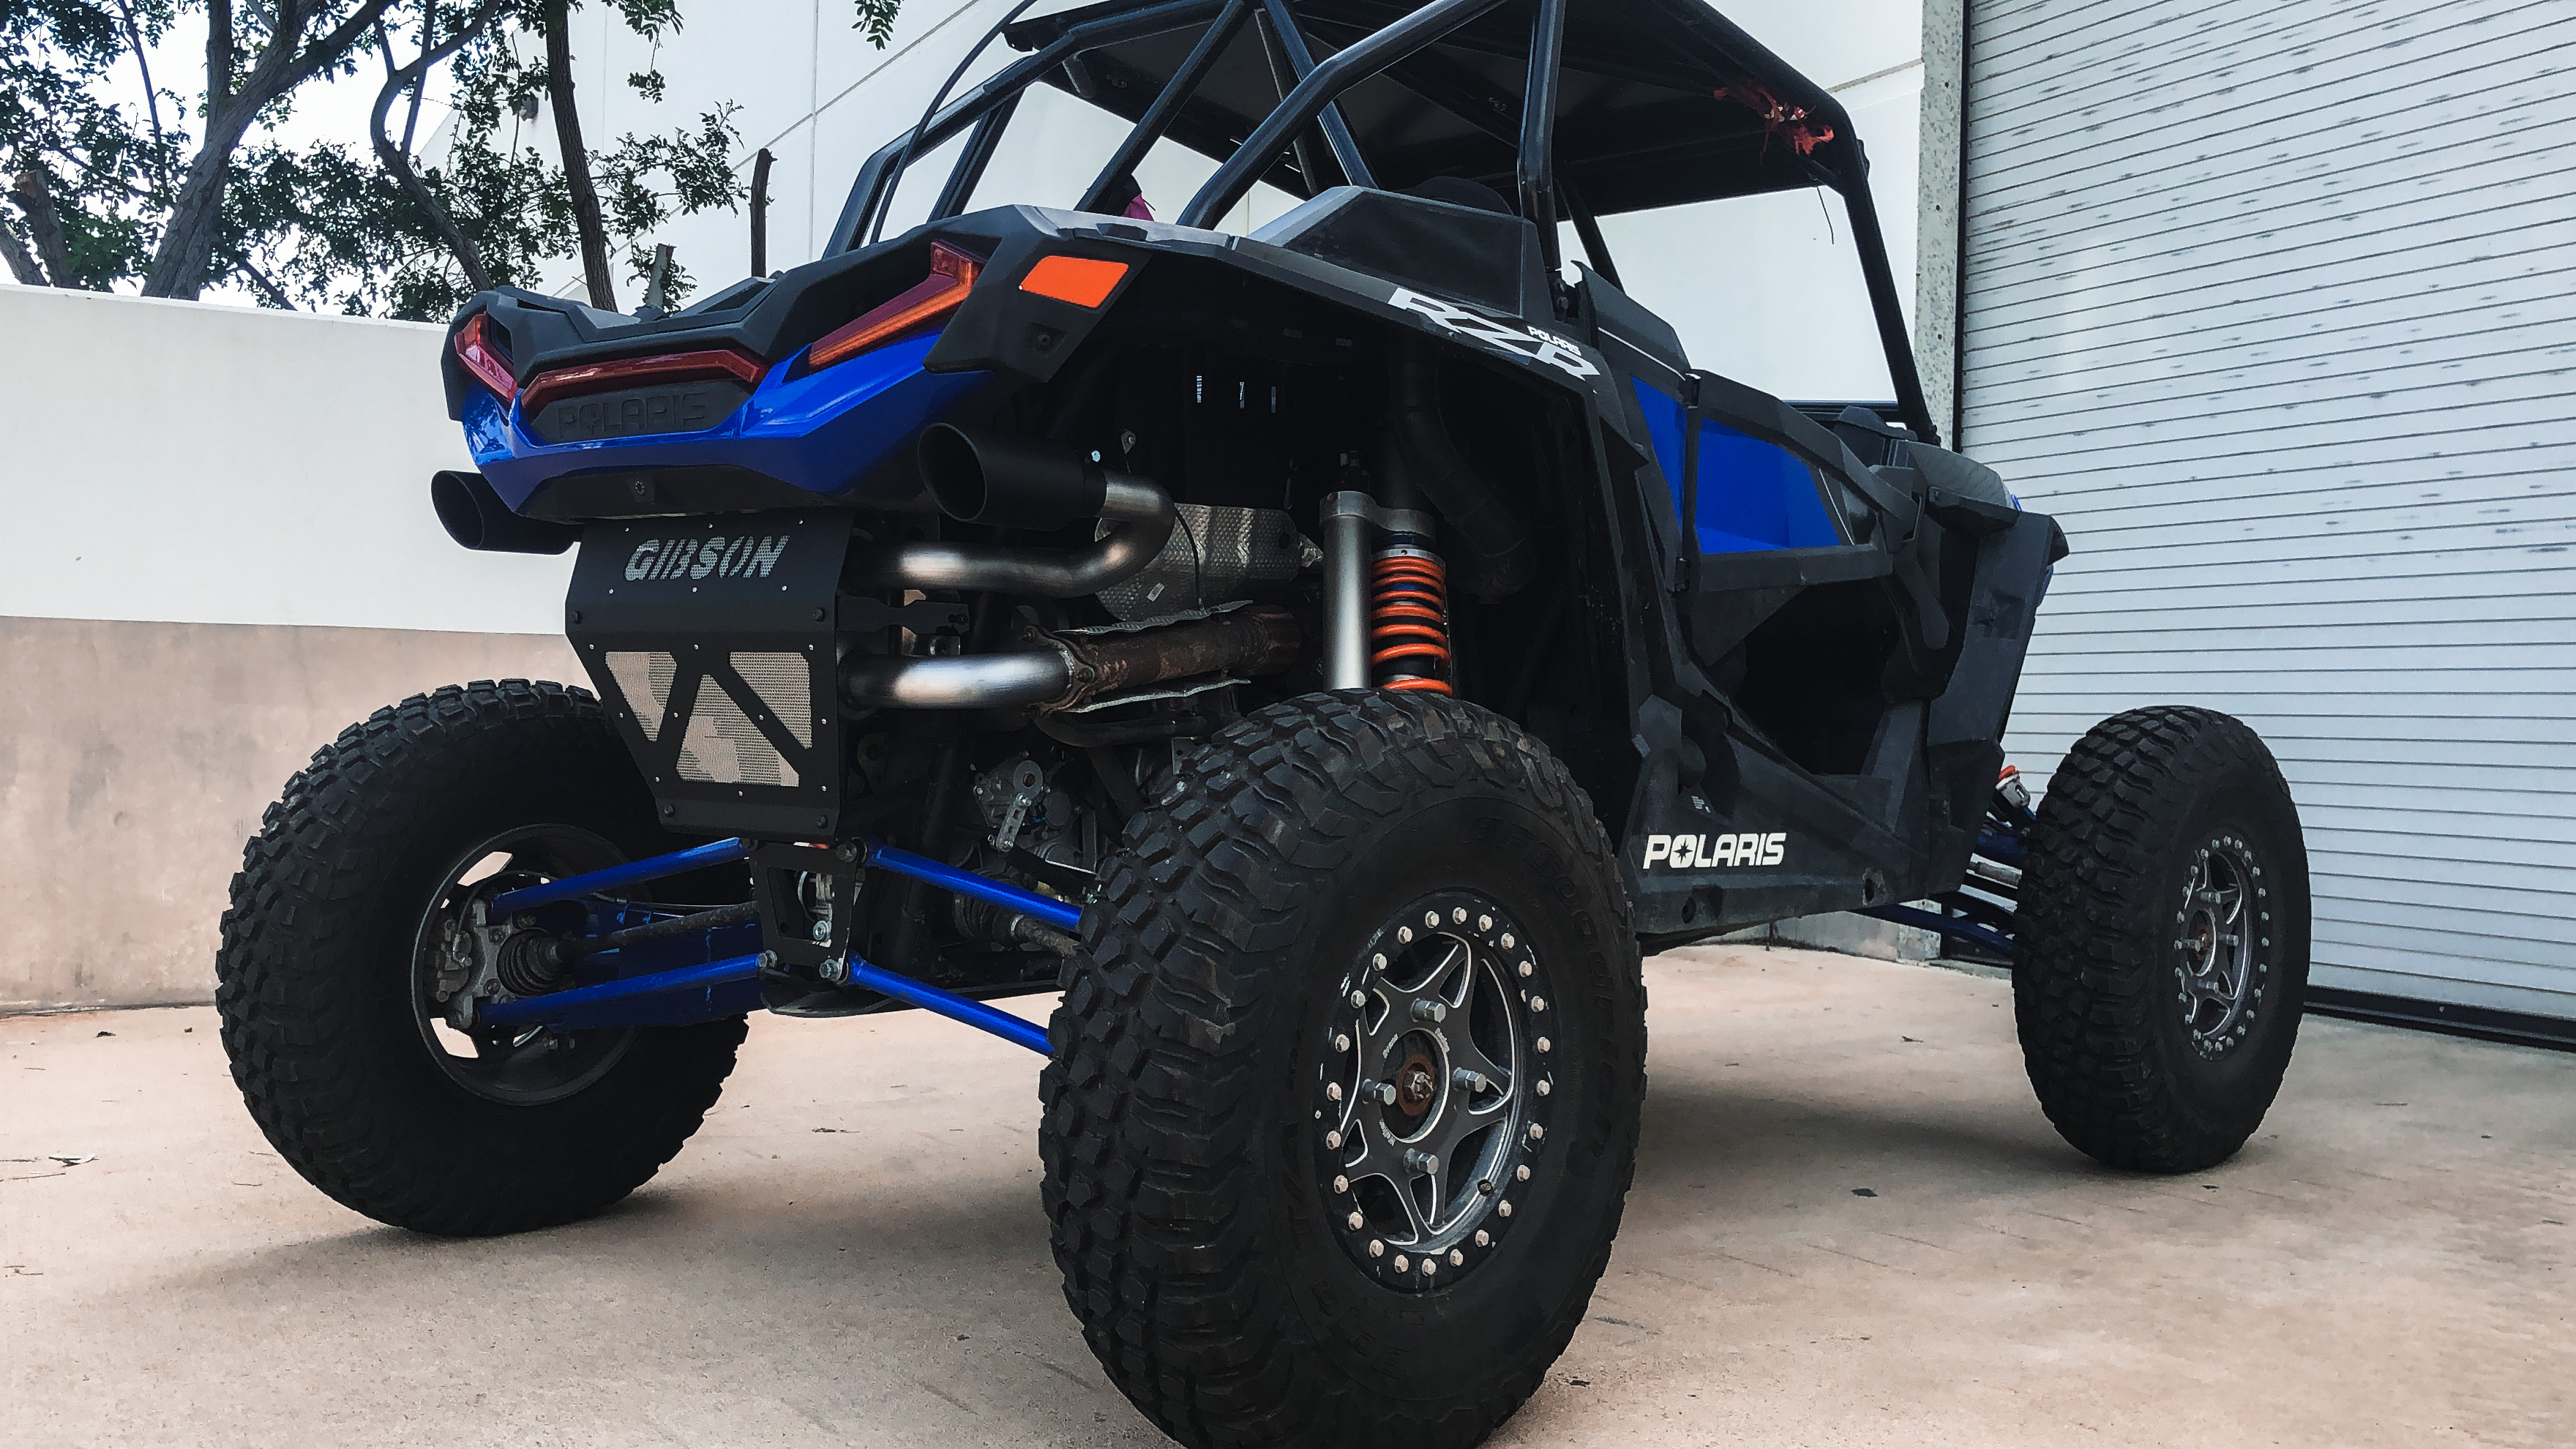 2019 Polaris RZR Exhaust Systems